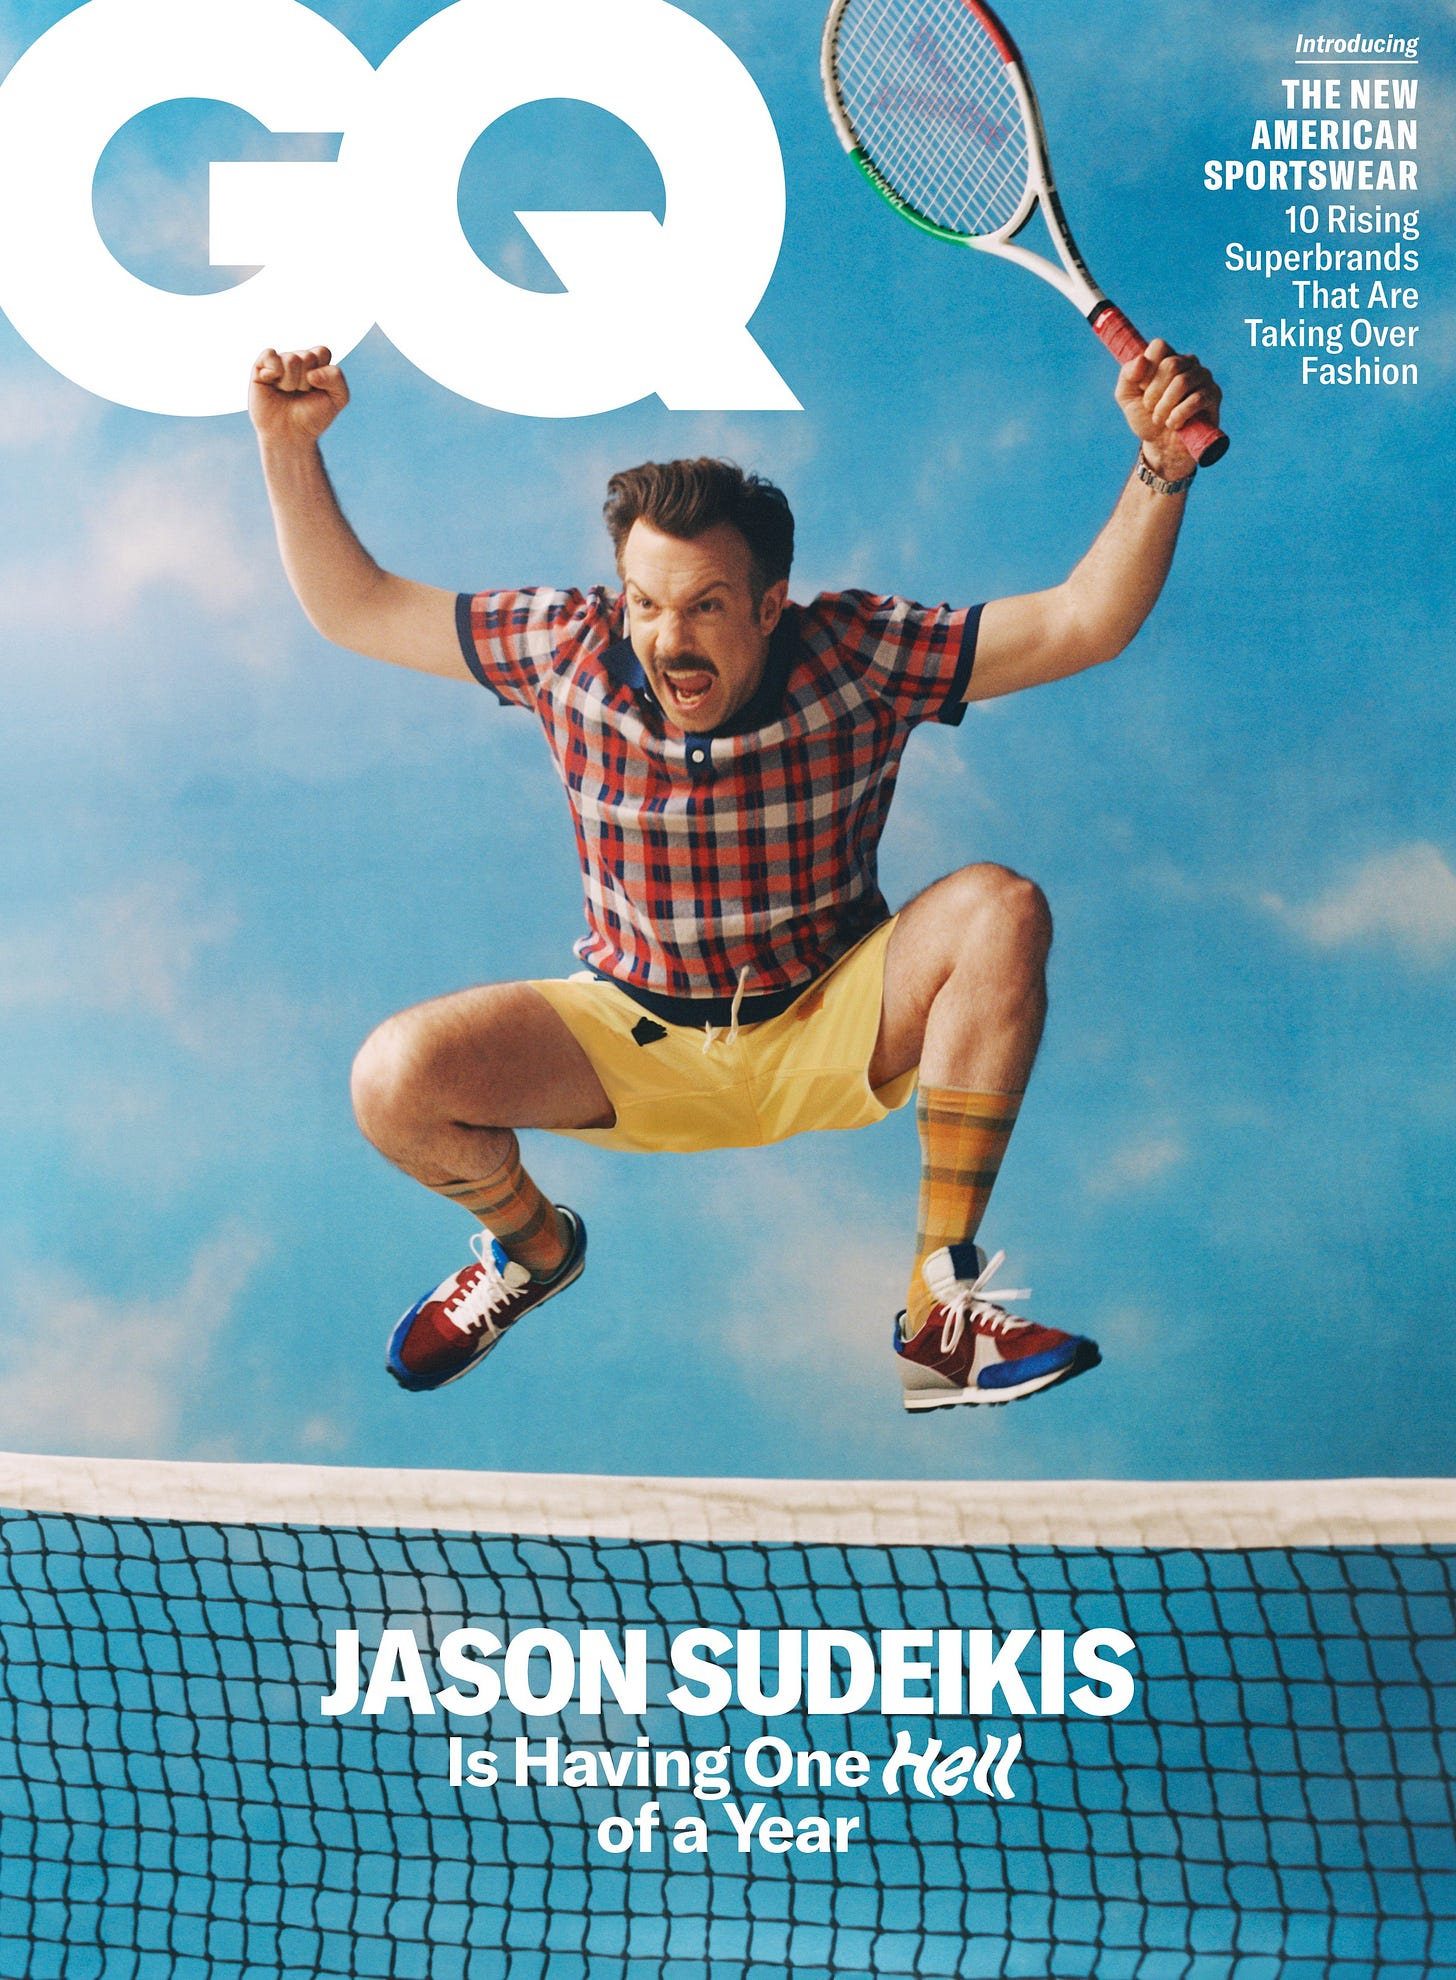 """Jason Sudeikis on Ted Lasso, SNL, and """"Landing Like an Avenger"""" After  Heartbreak   GQ"""